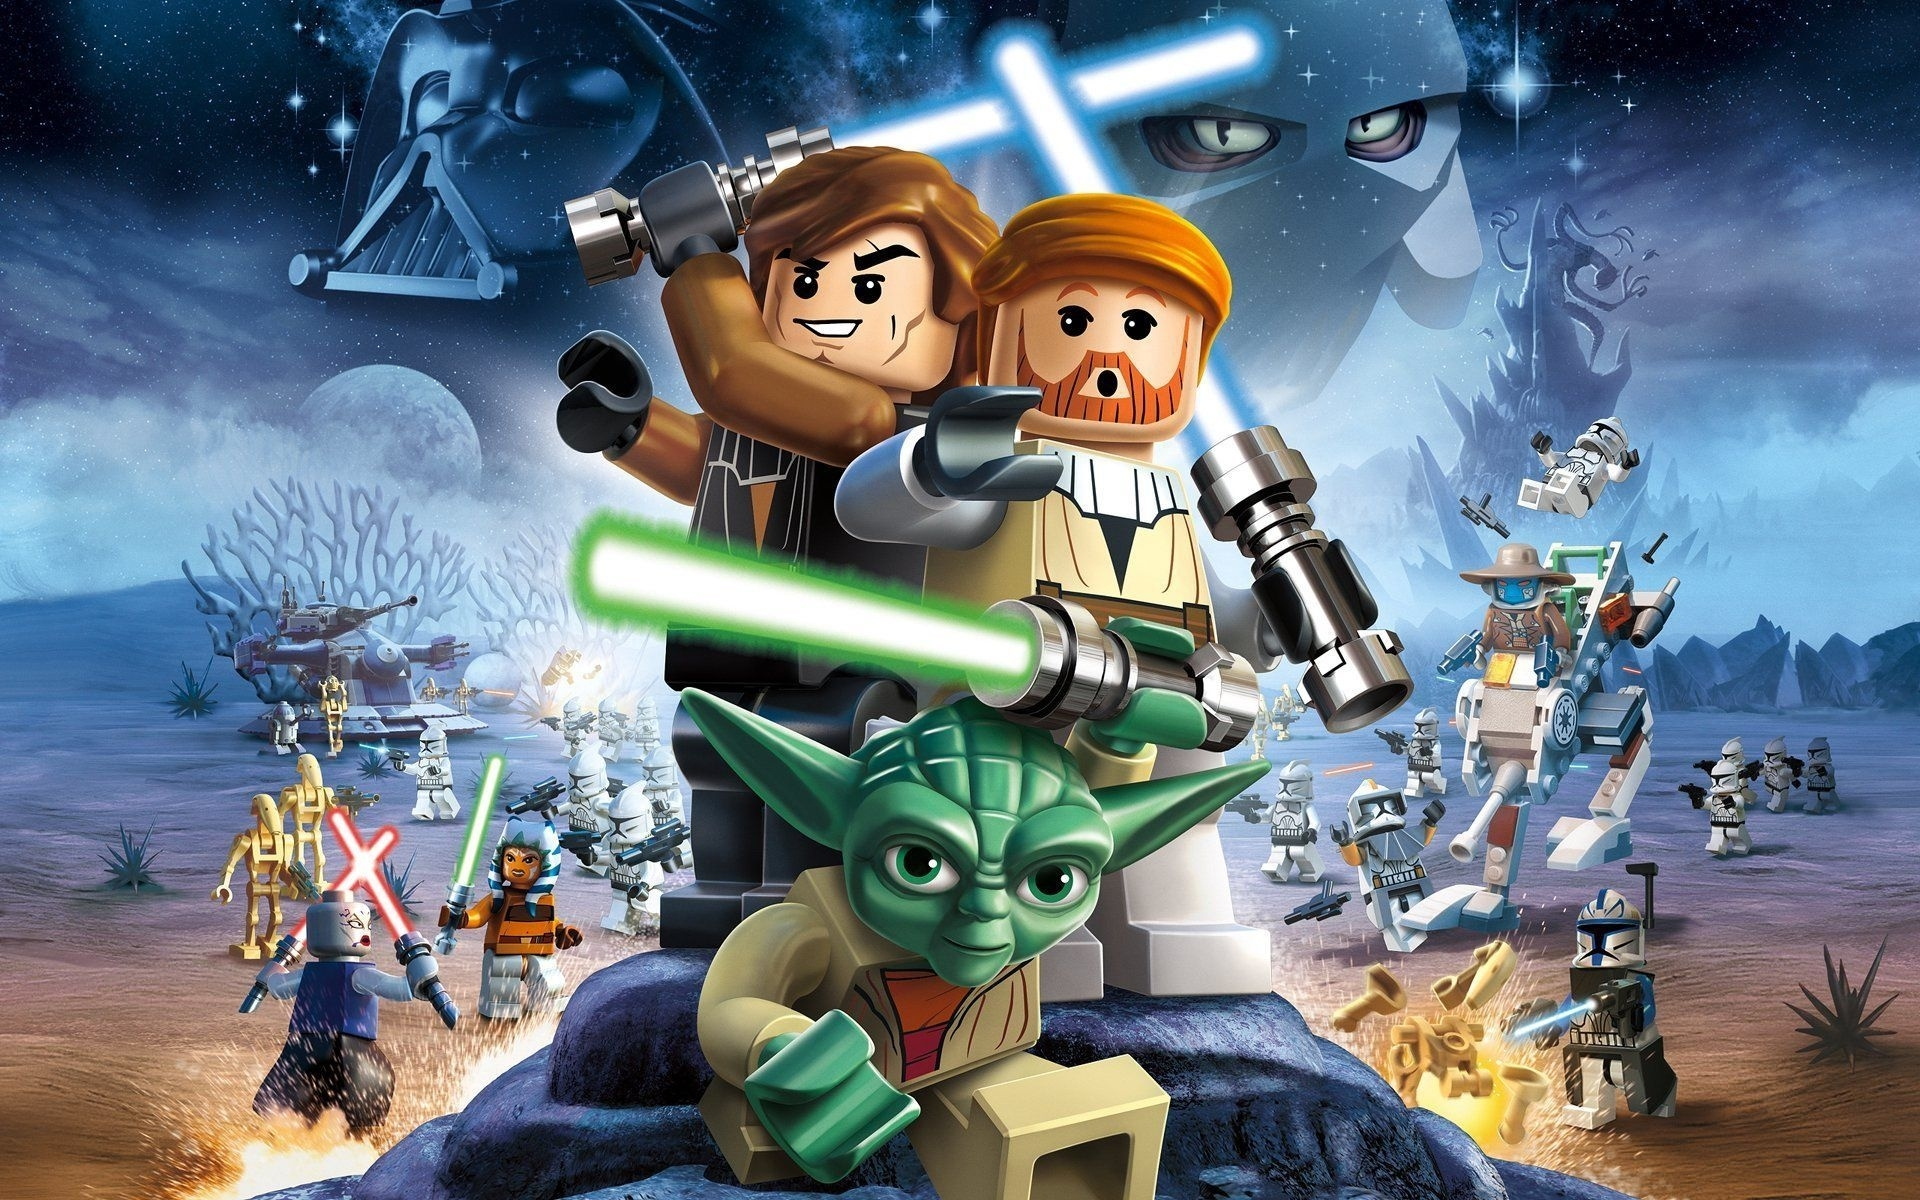 lego star wars wallpapers group (78+)